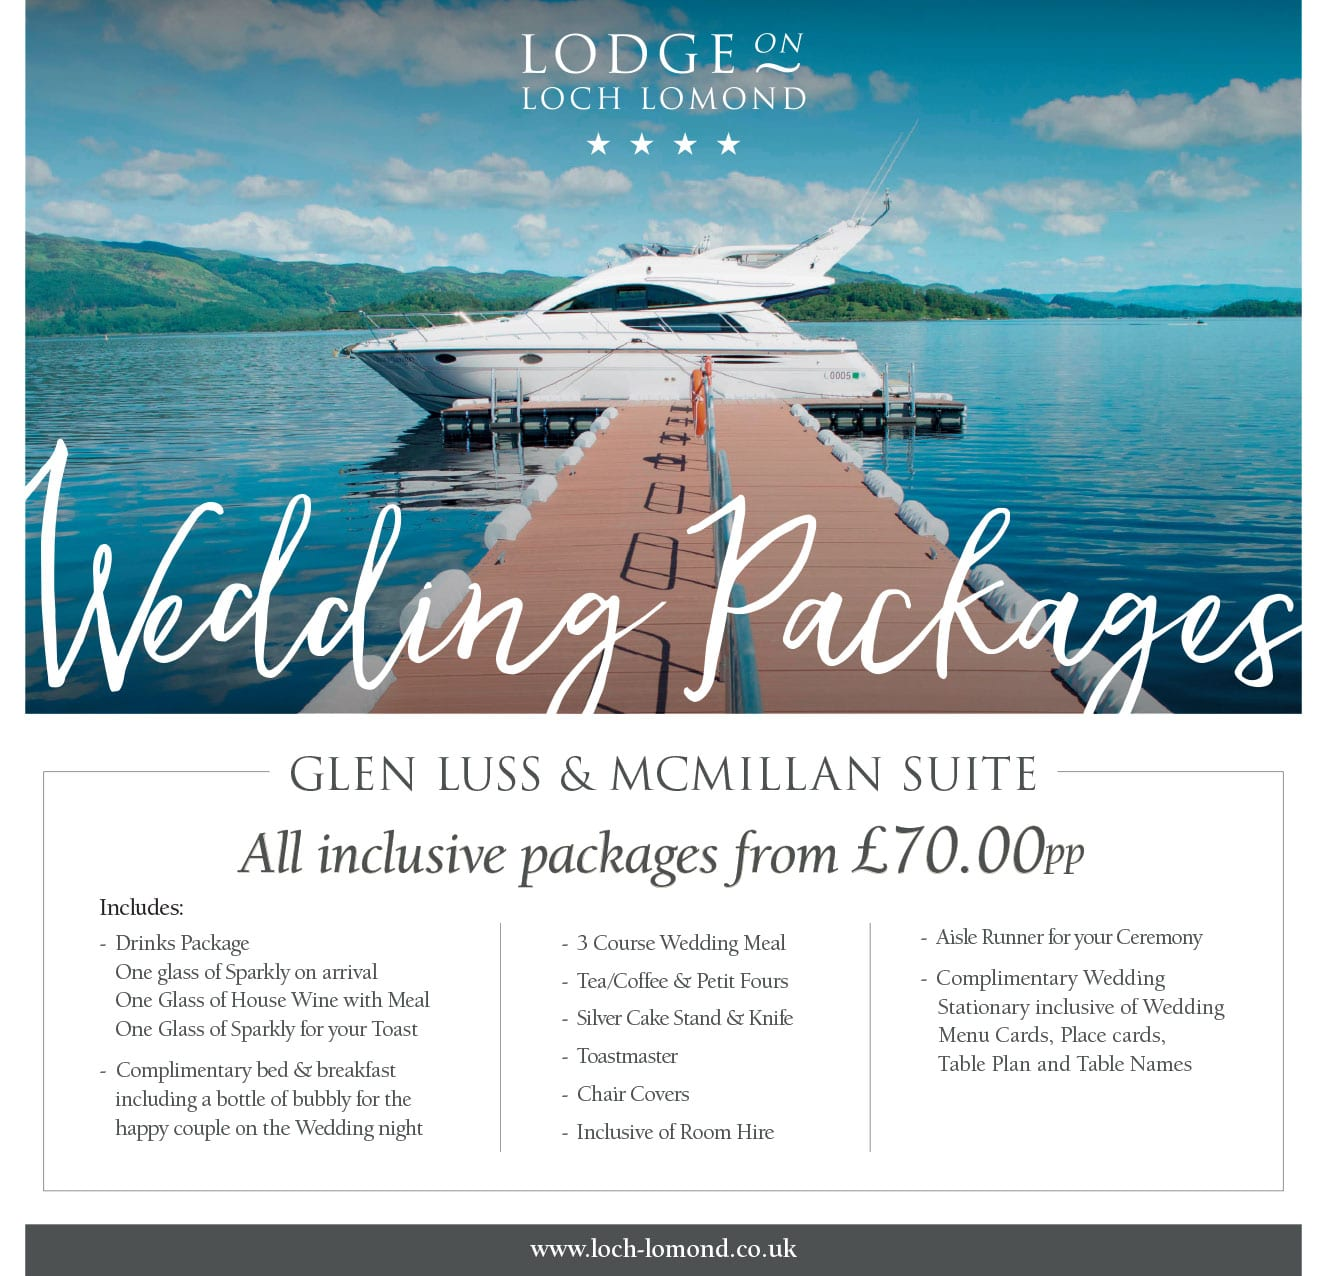 Lodge on Loch Lomond Wedding Packages 2020 to 2021